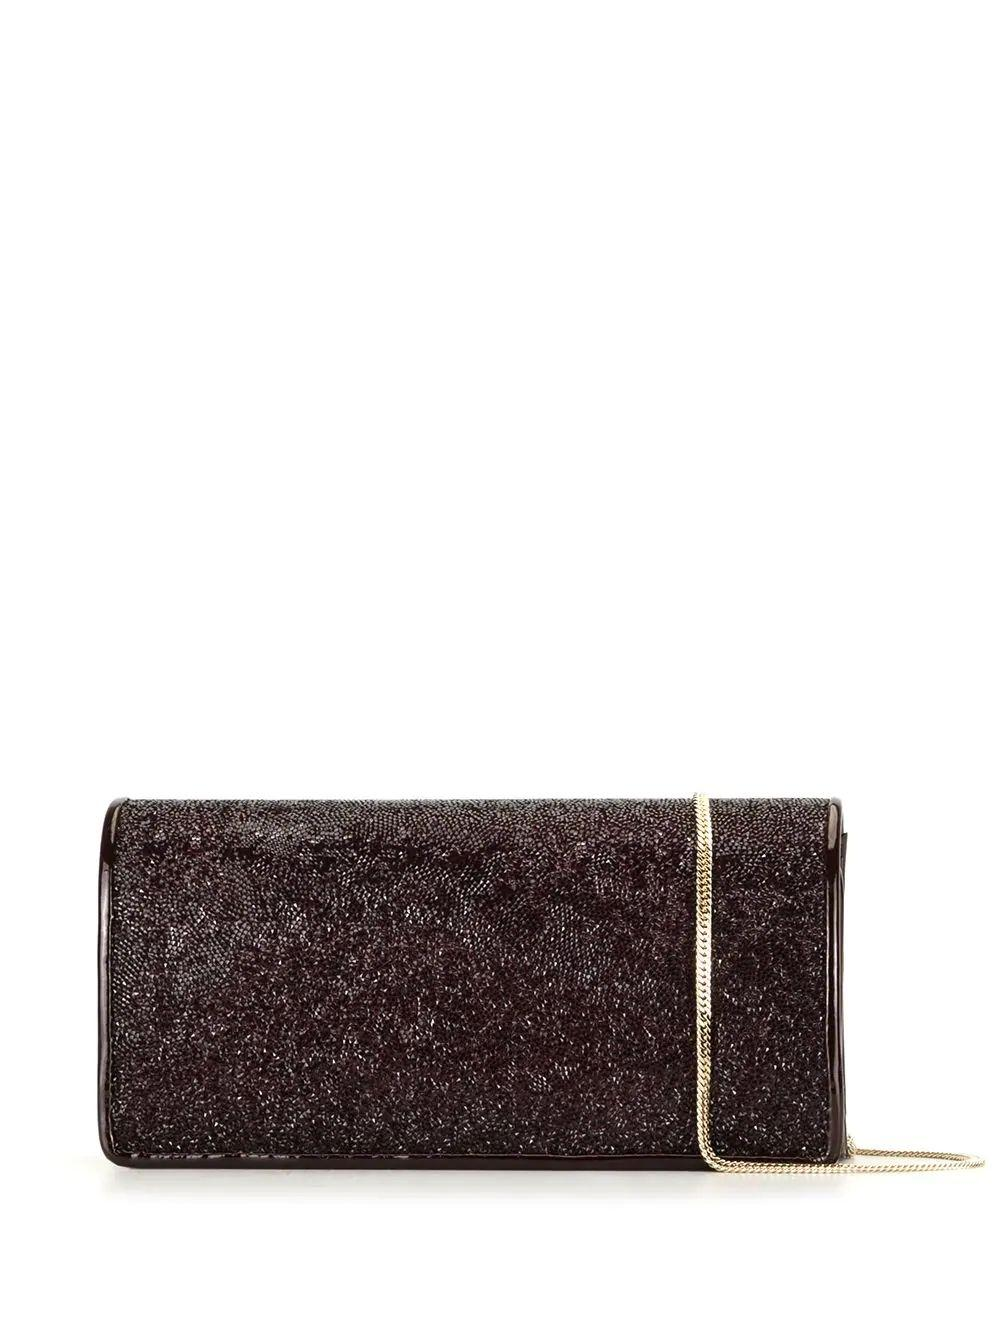 Bella Glitter Clutch Item # BELLA ROCKS